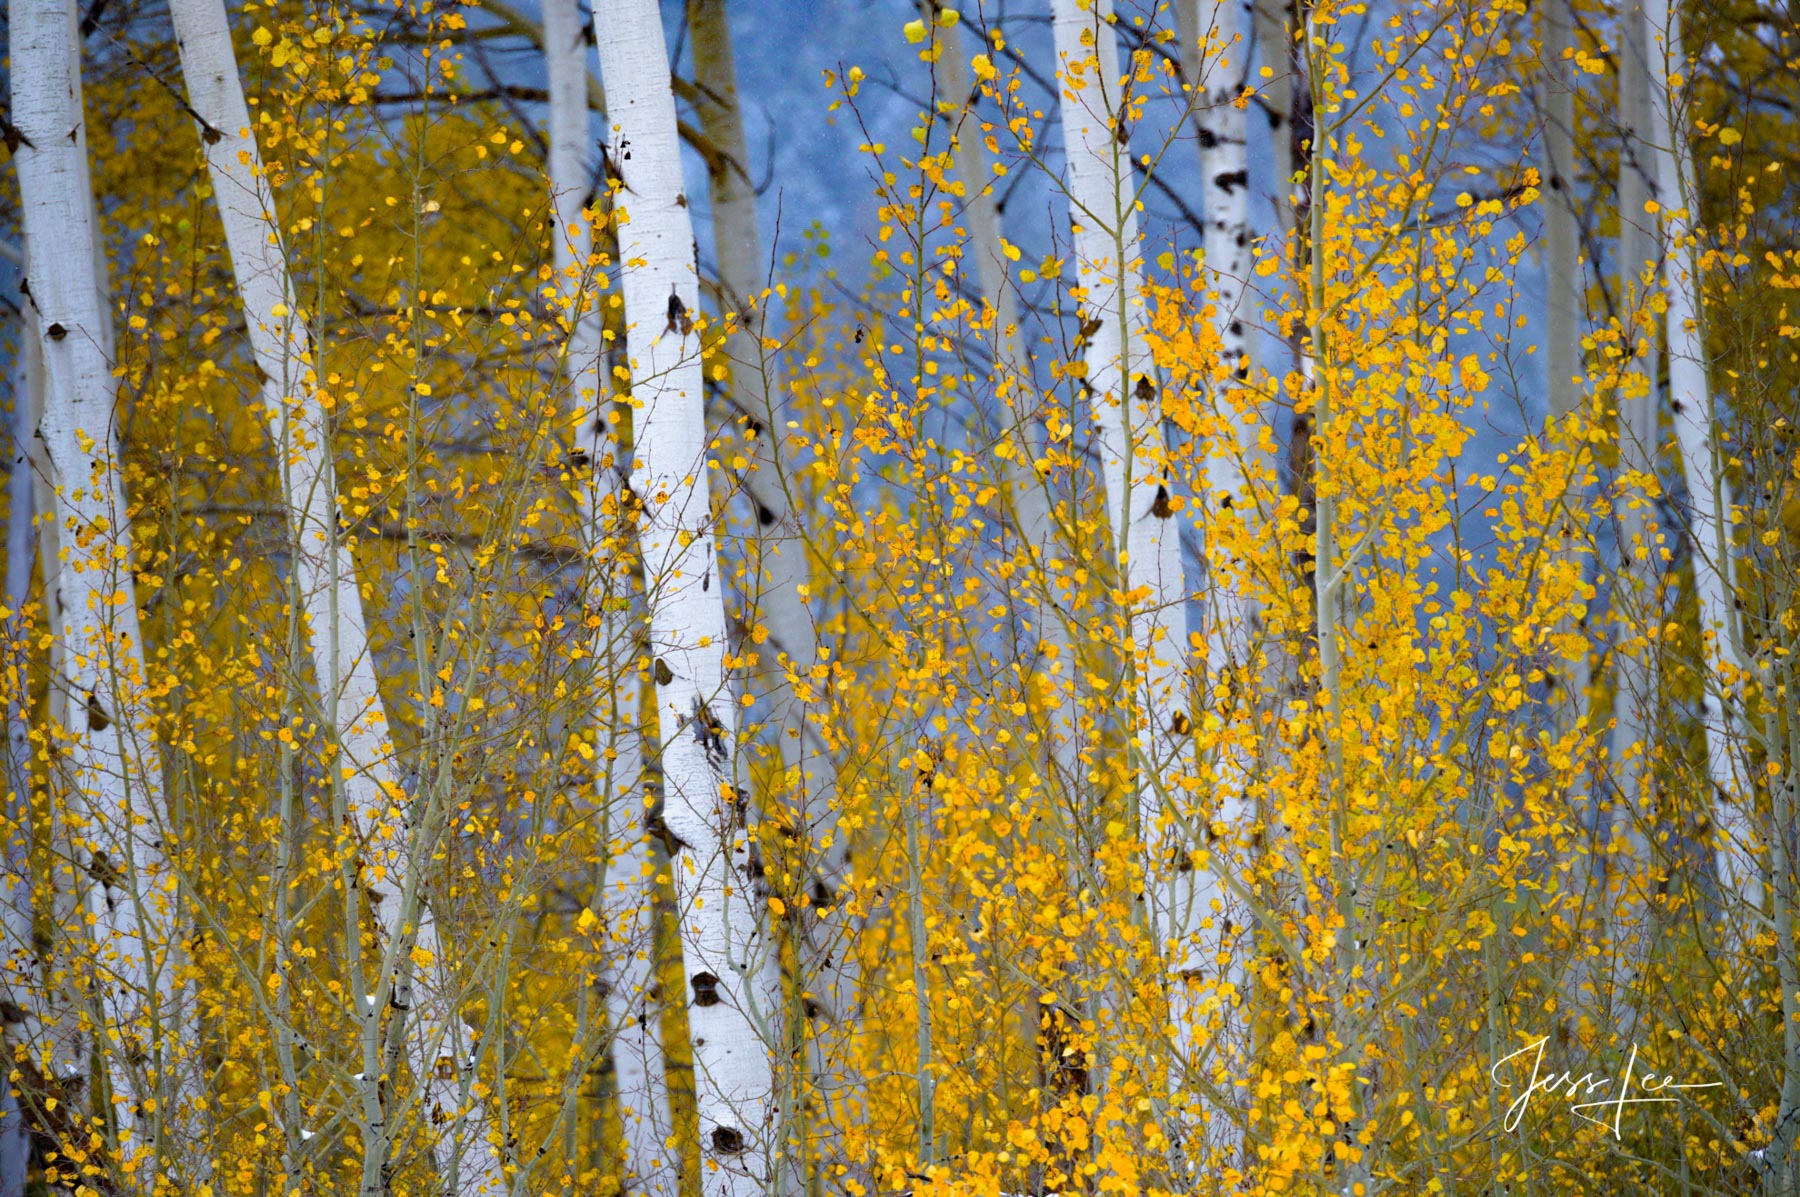 Photograph of the Aspen Trees in contrast to the blue light on the mountain barely visible in the background.,, photo